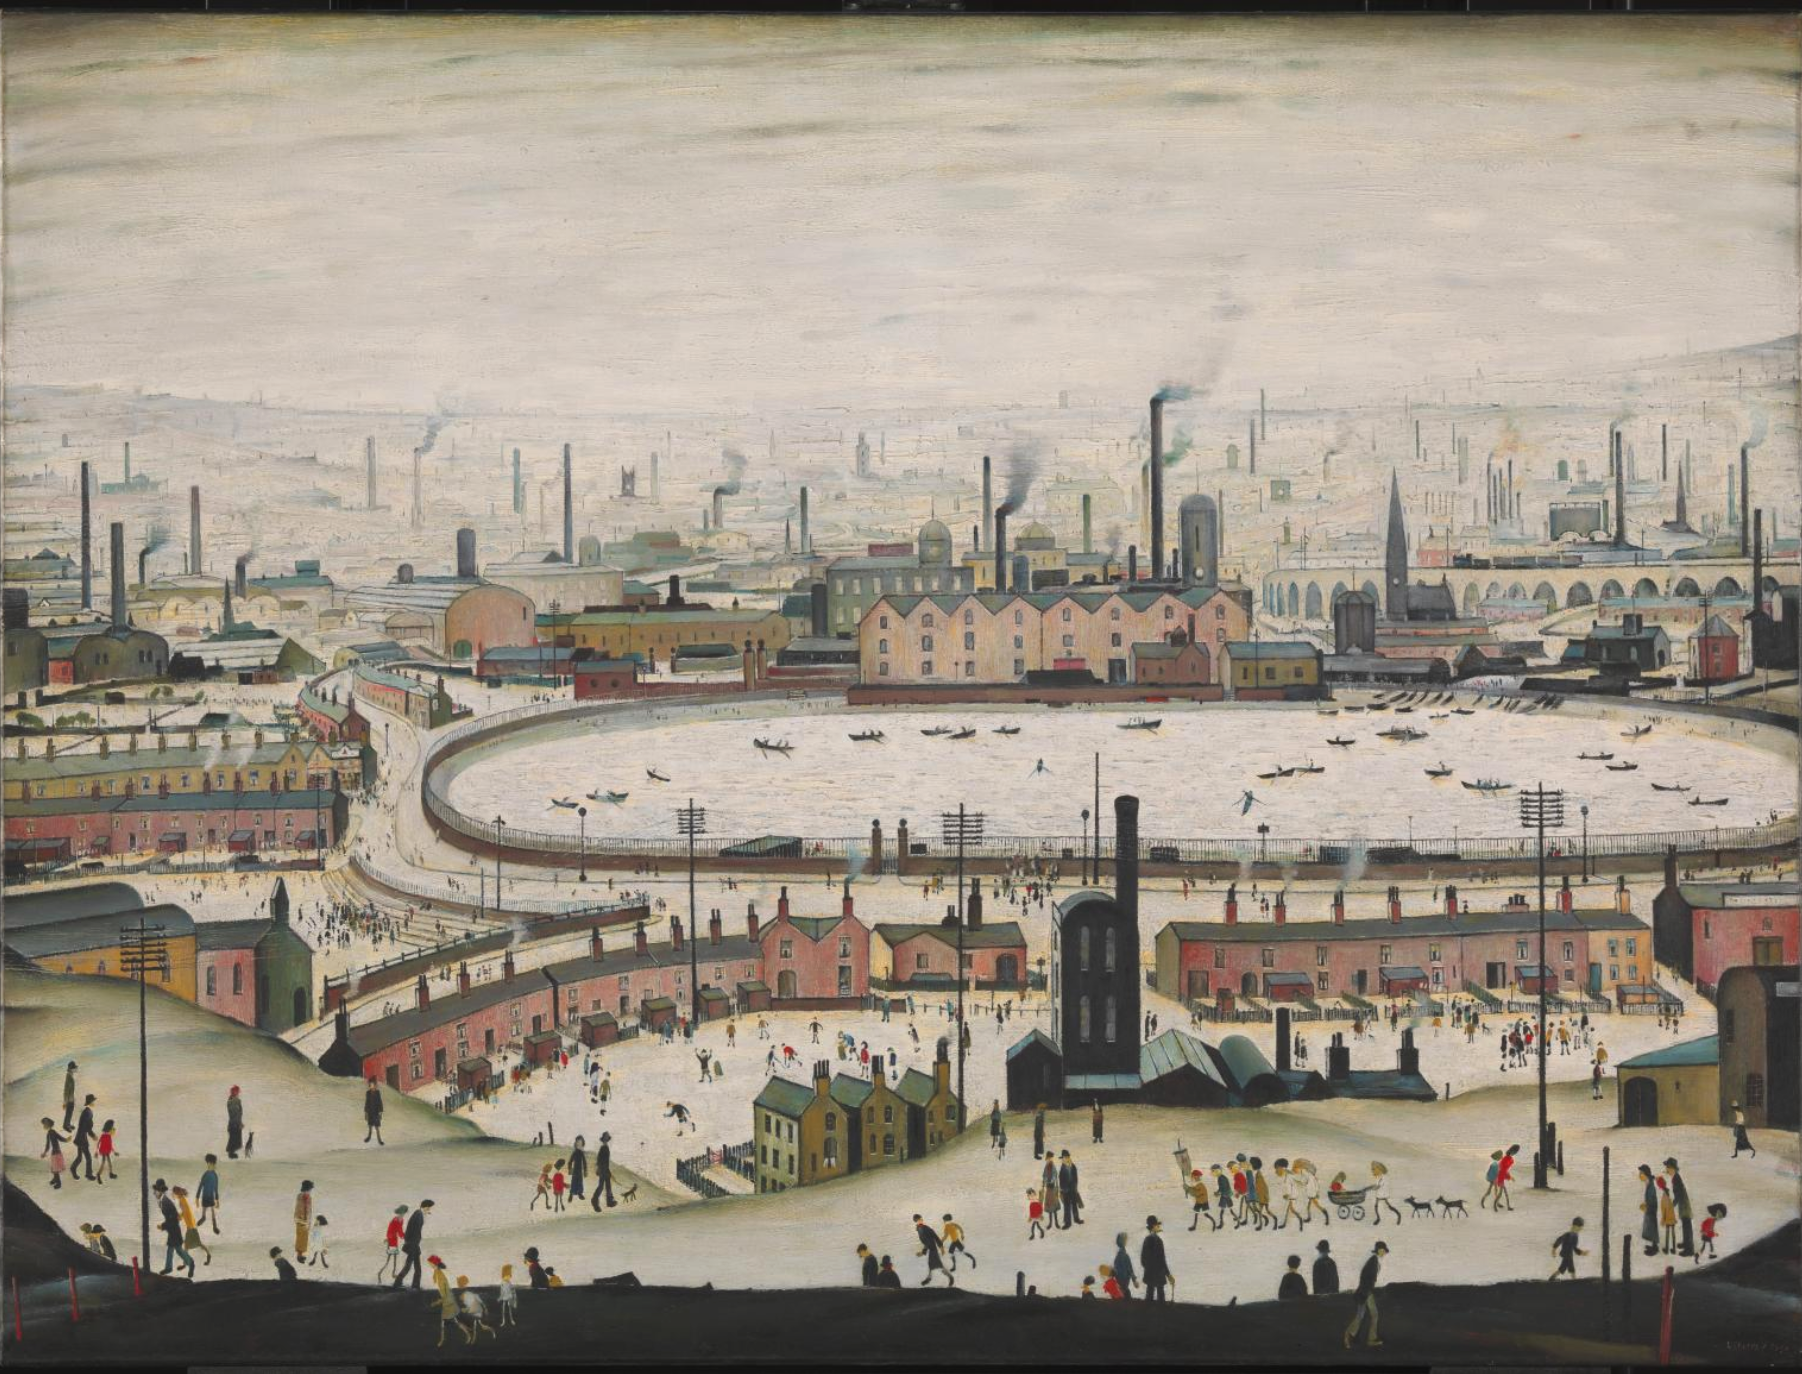 The Pond (1950) by Laurence Stephen Lowry (1887 - 1976), English artist.